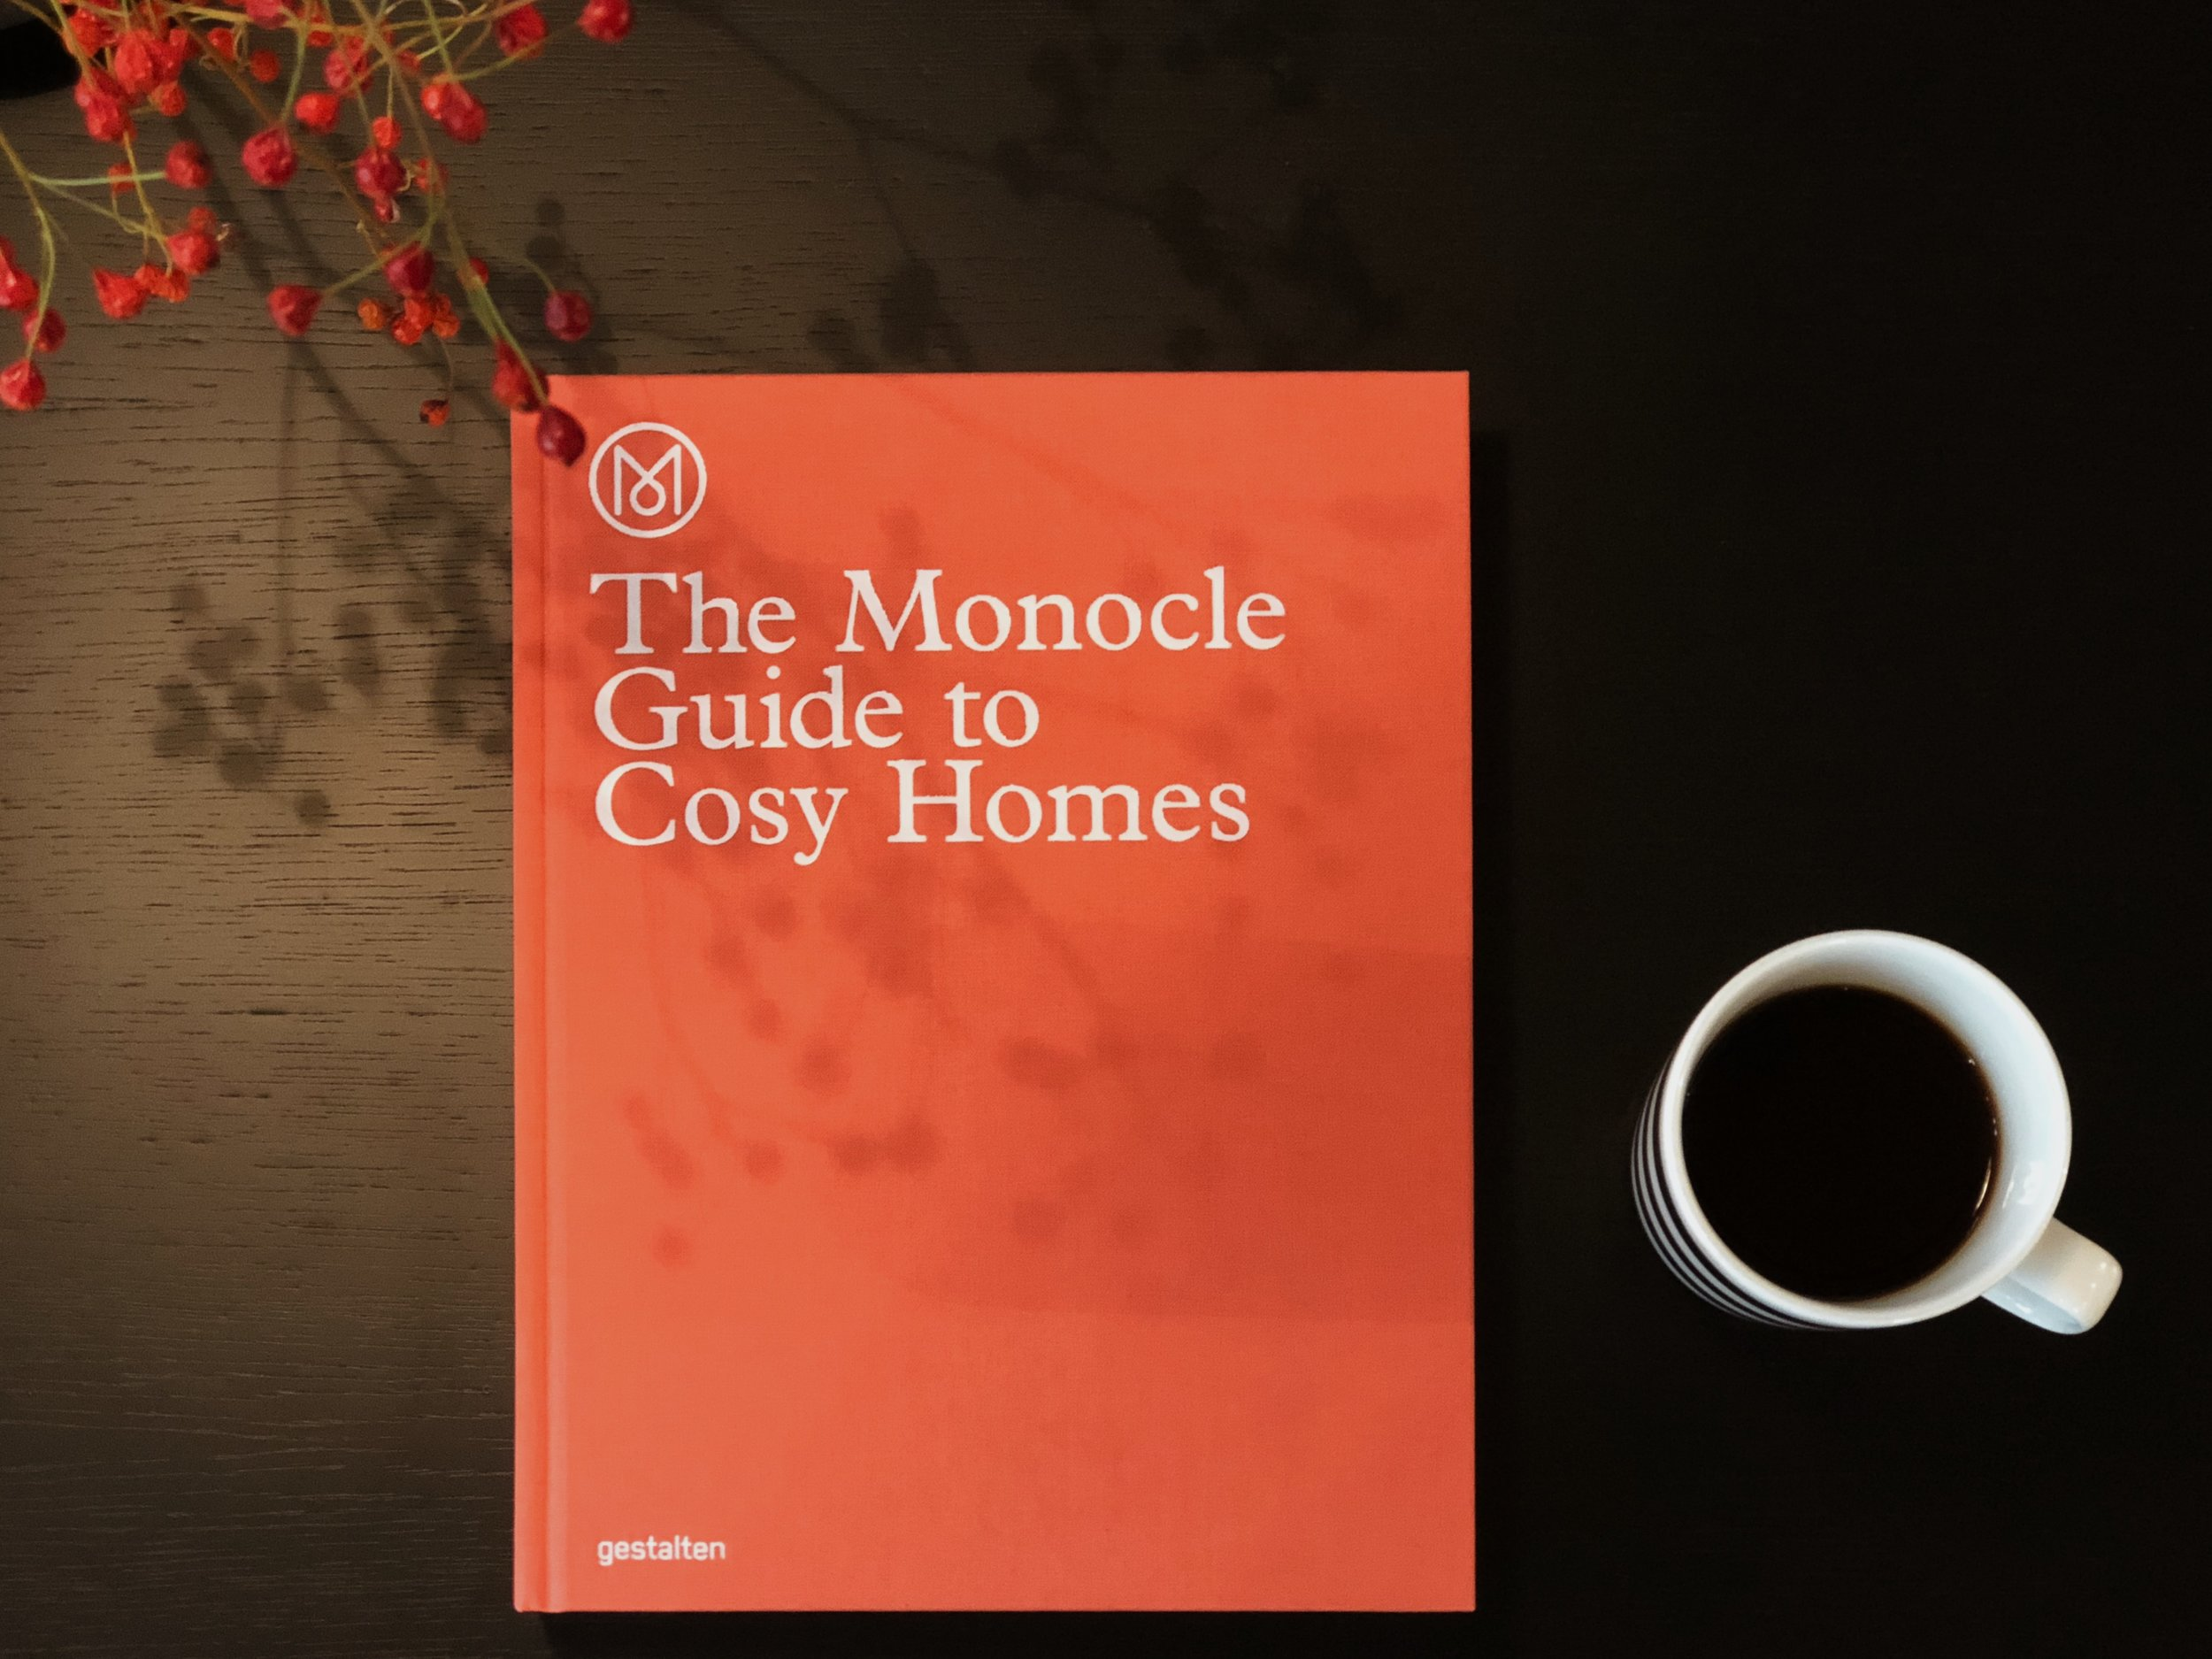 The  Monocle Guide to Cosy Homes  tells us how to turn a house into a home. Both a practical guide and a great source of inspiration.